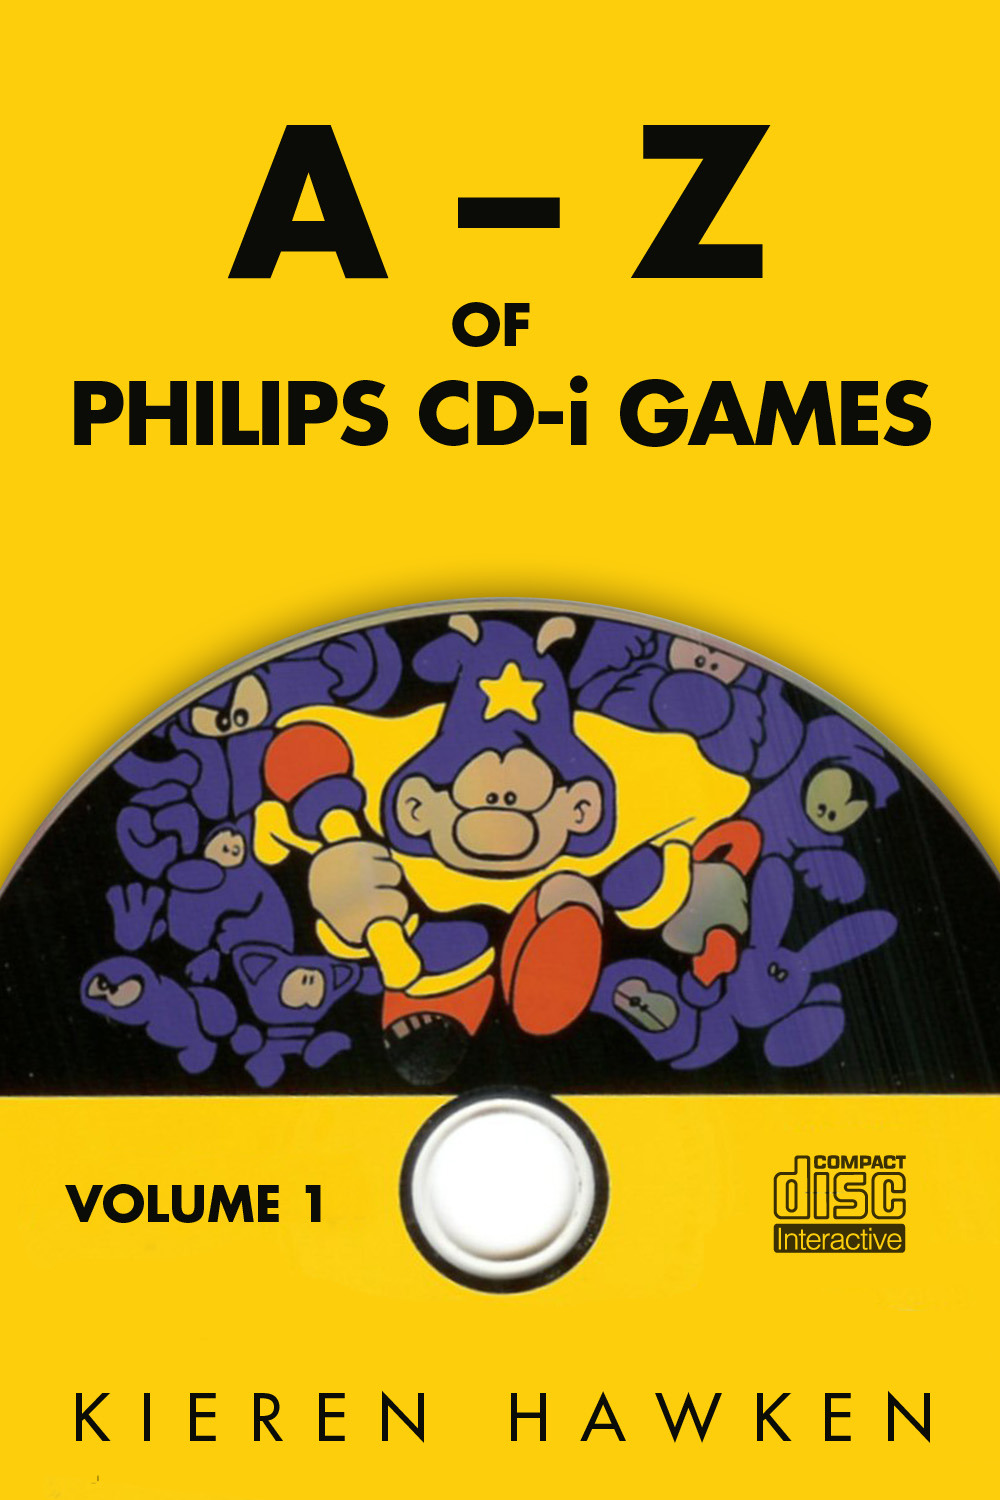 Hawken, Kieren - The A-Z of Philips CD-i Games: Volume 1, ebook